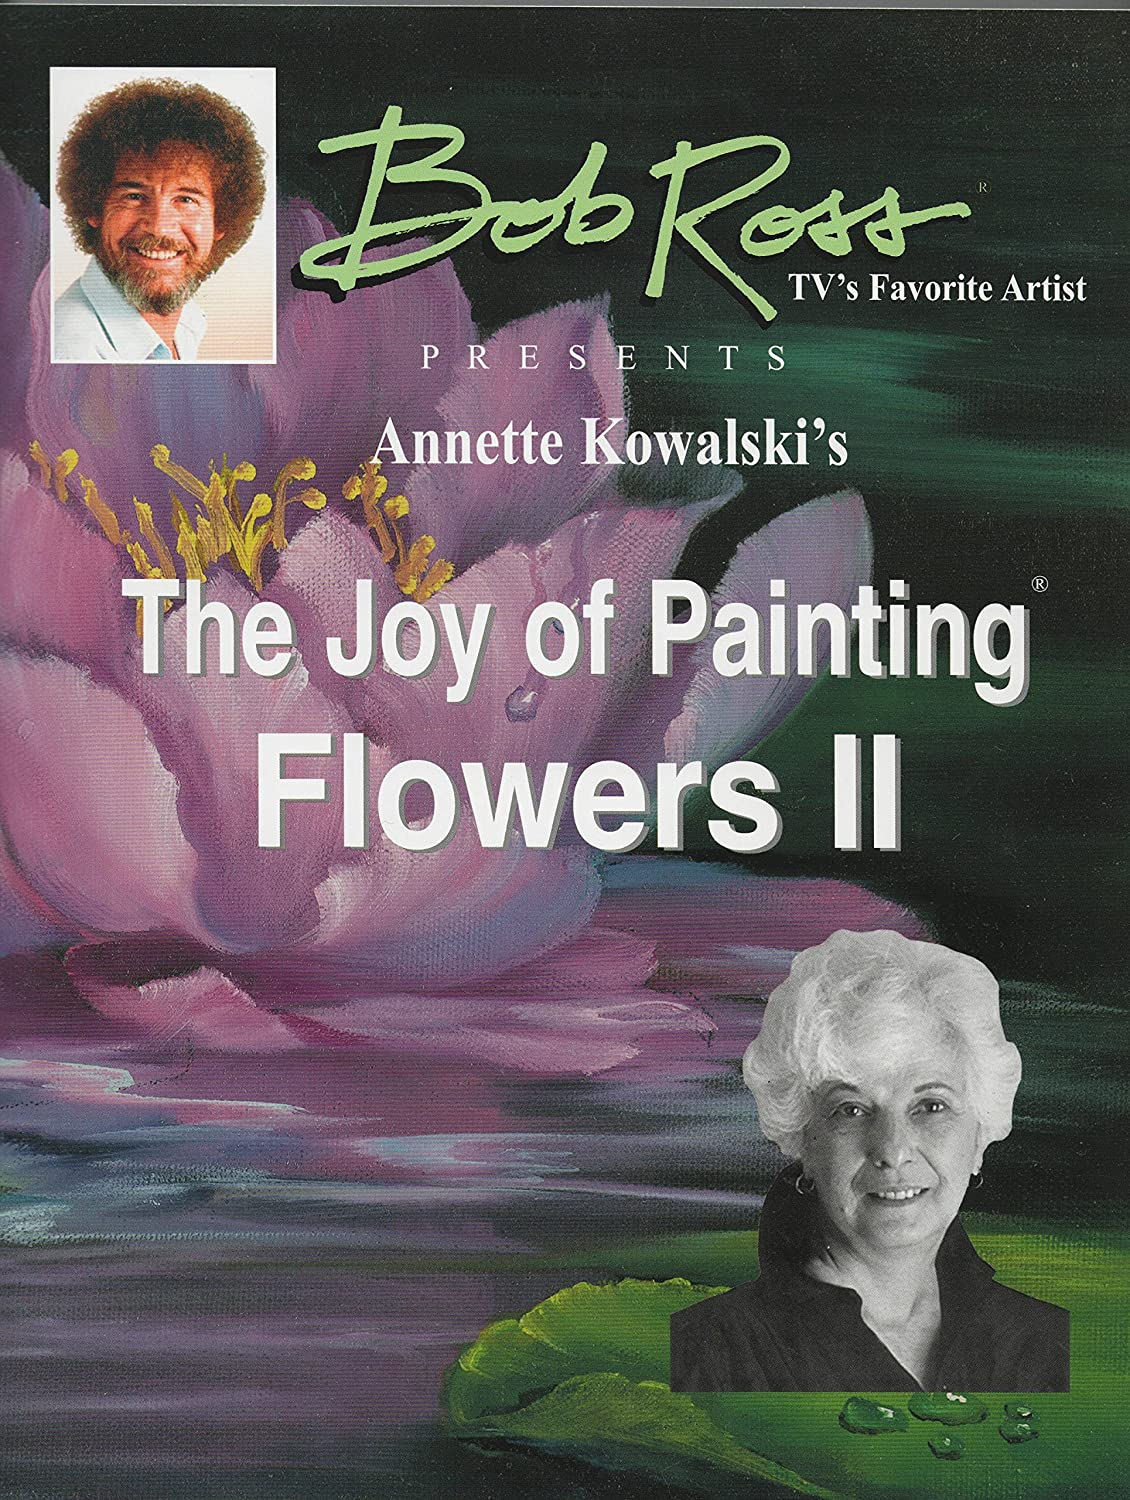 Bob Ross Joy of Painting Flowers Book II by Annette Kowalski